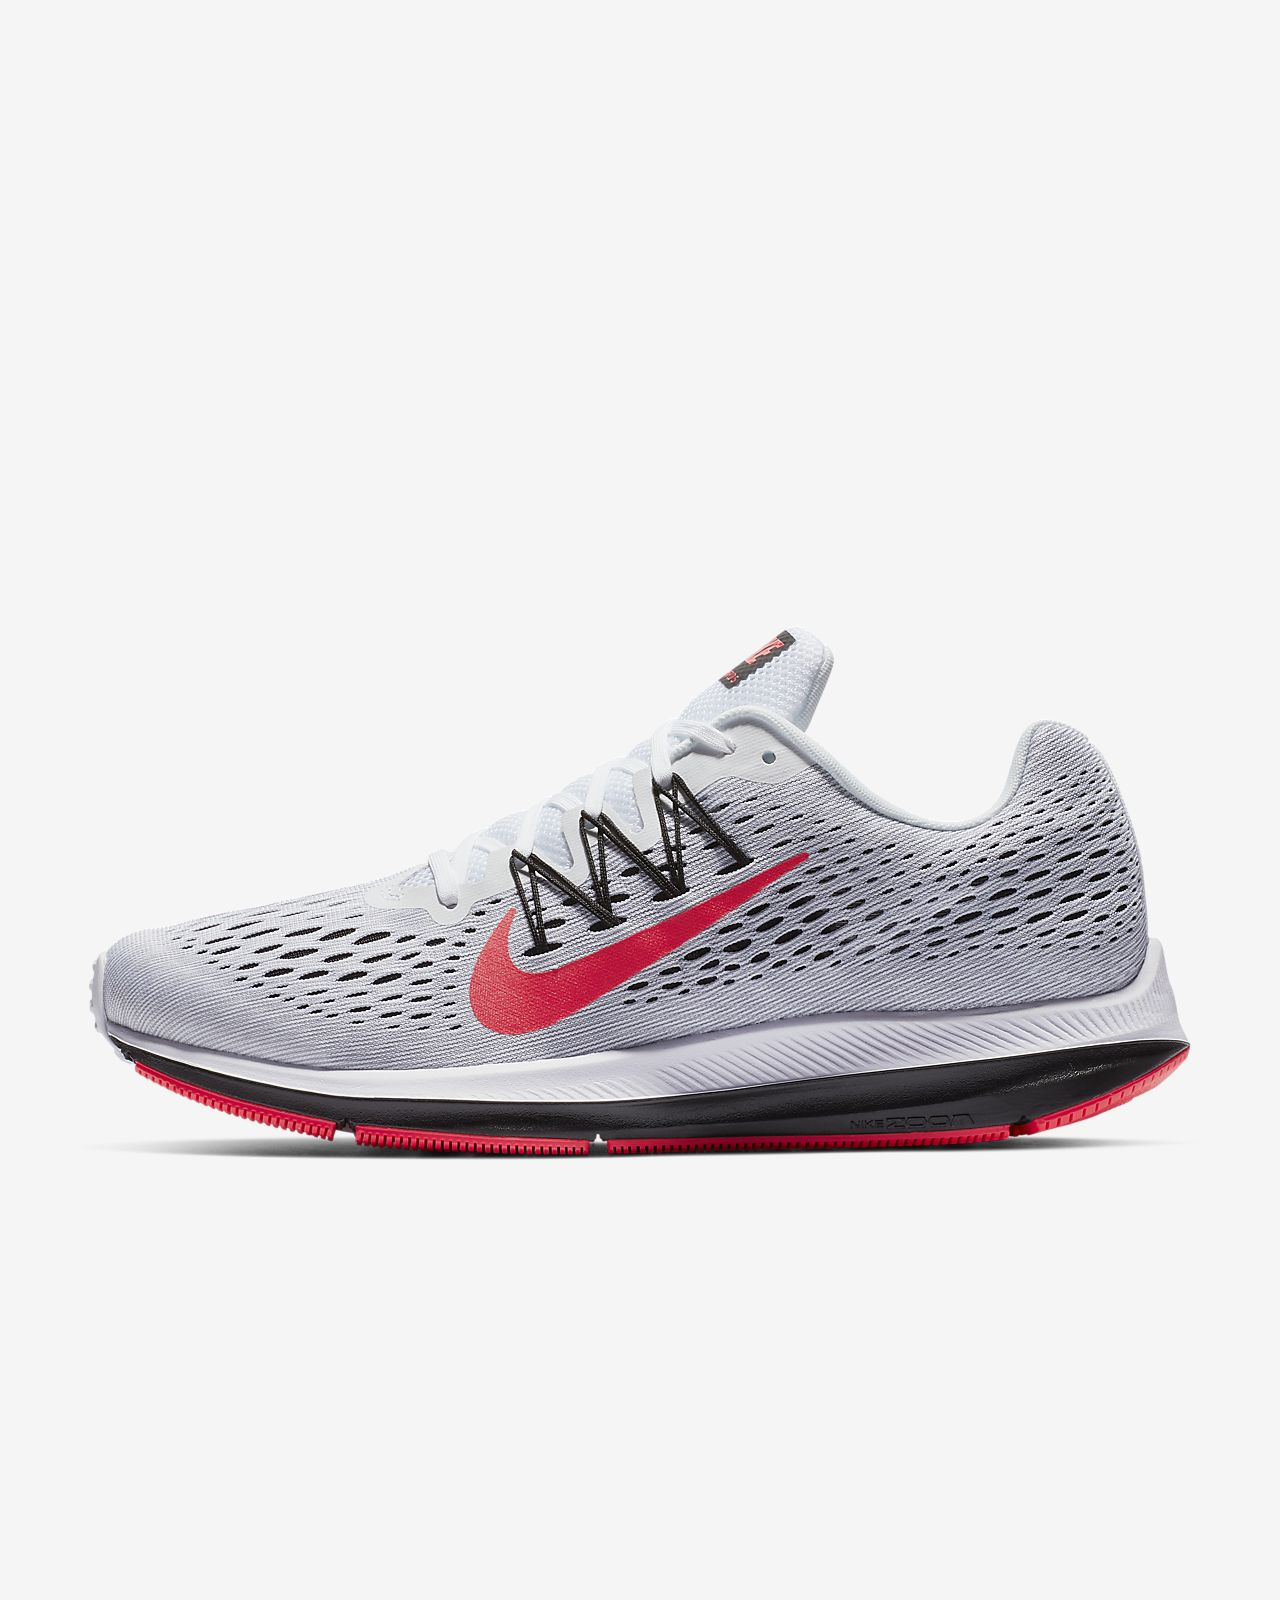 1cdc3e7183a67 Nike Air Zoom Winflo 5 Men s Running Shoe. Nike.com IN